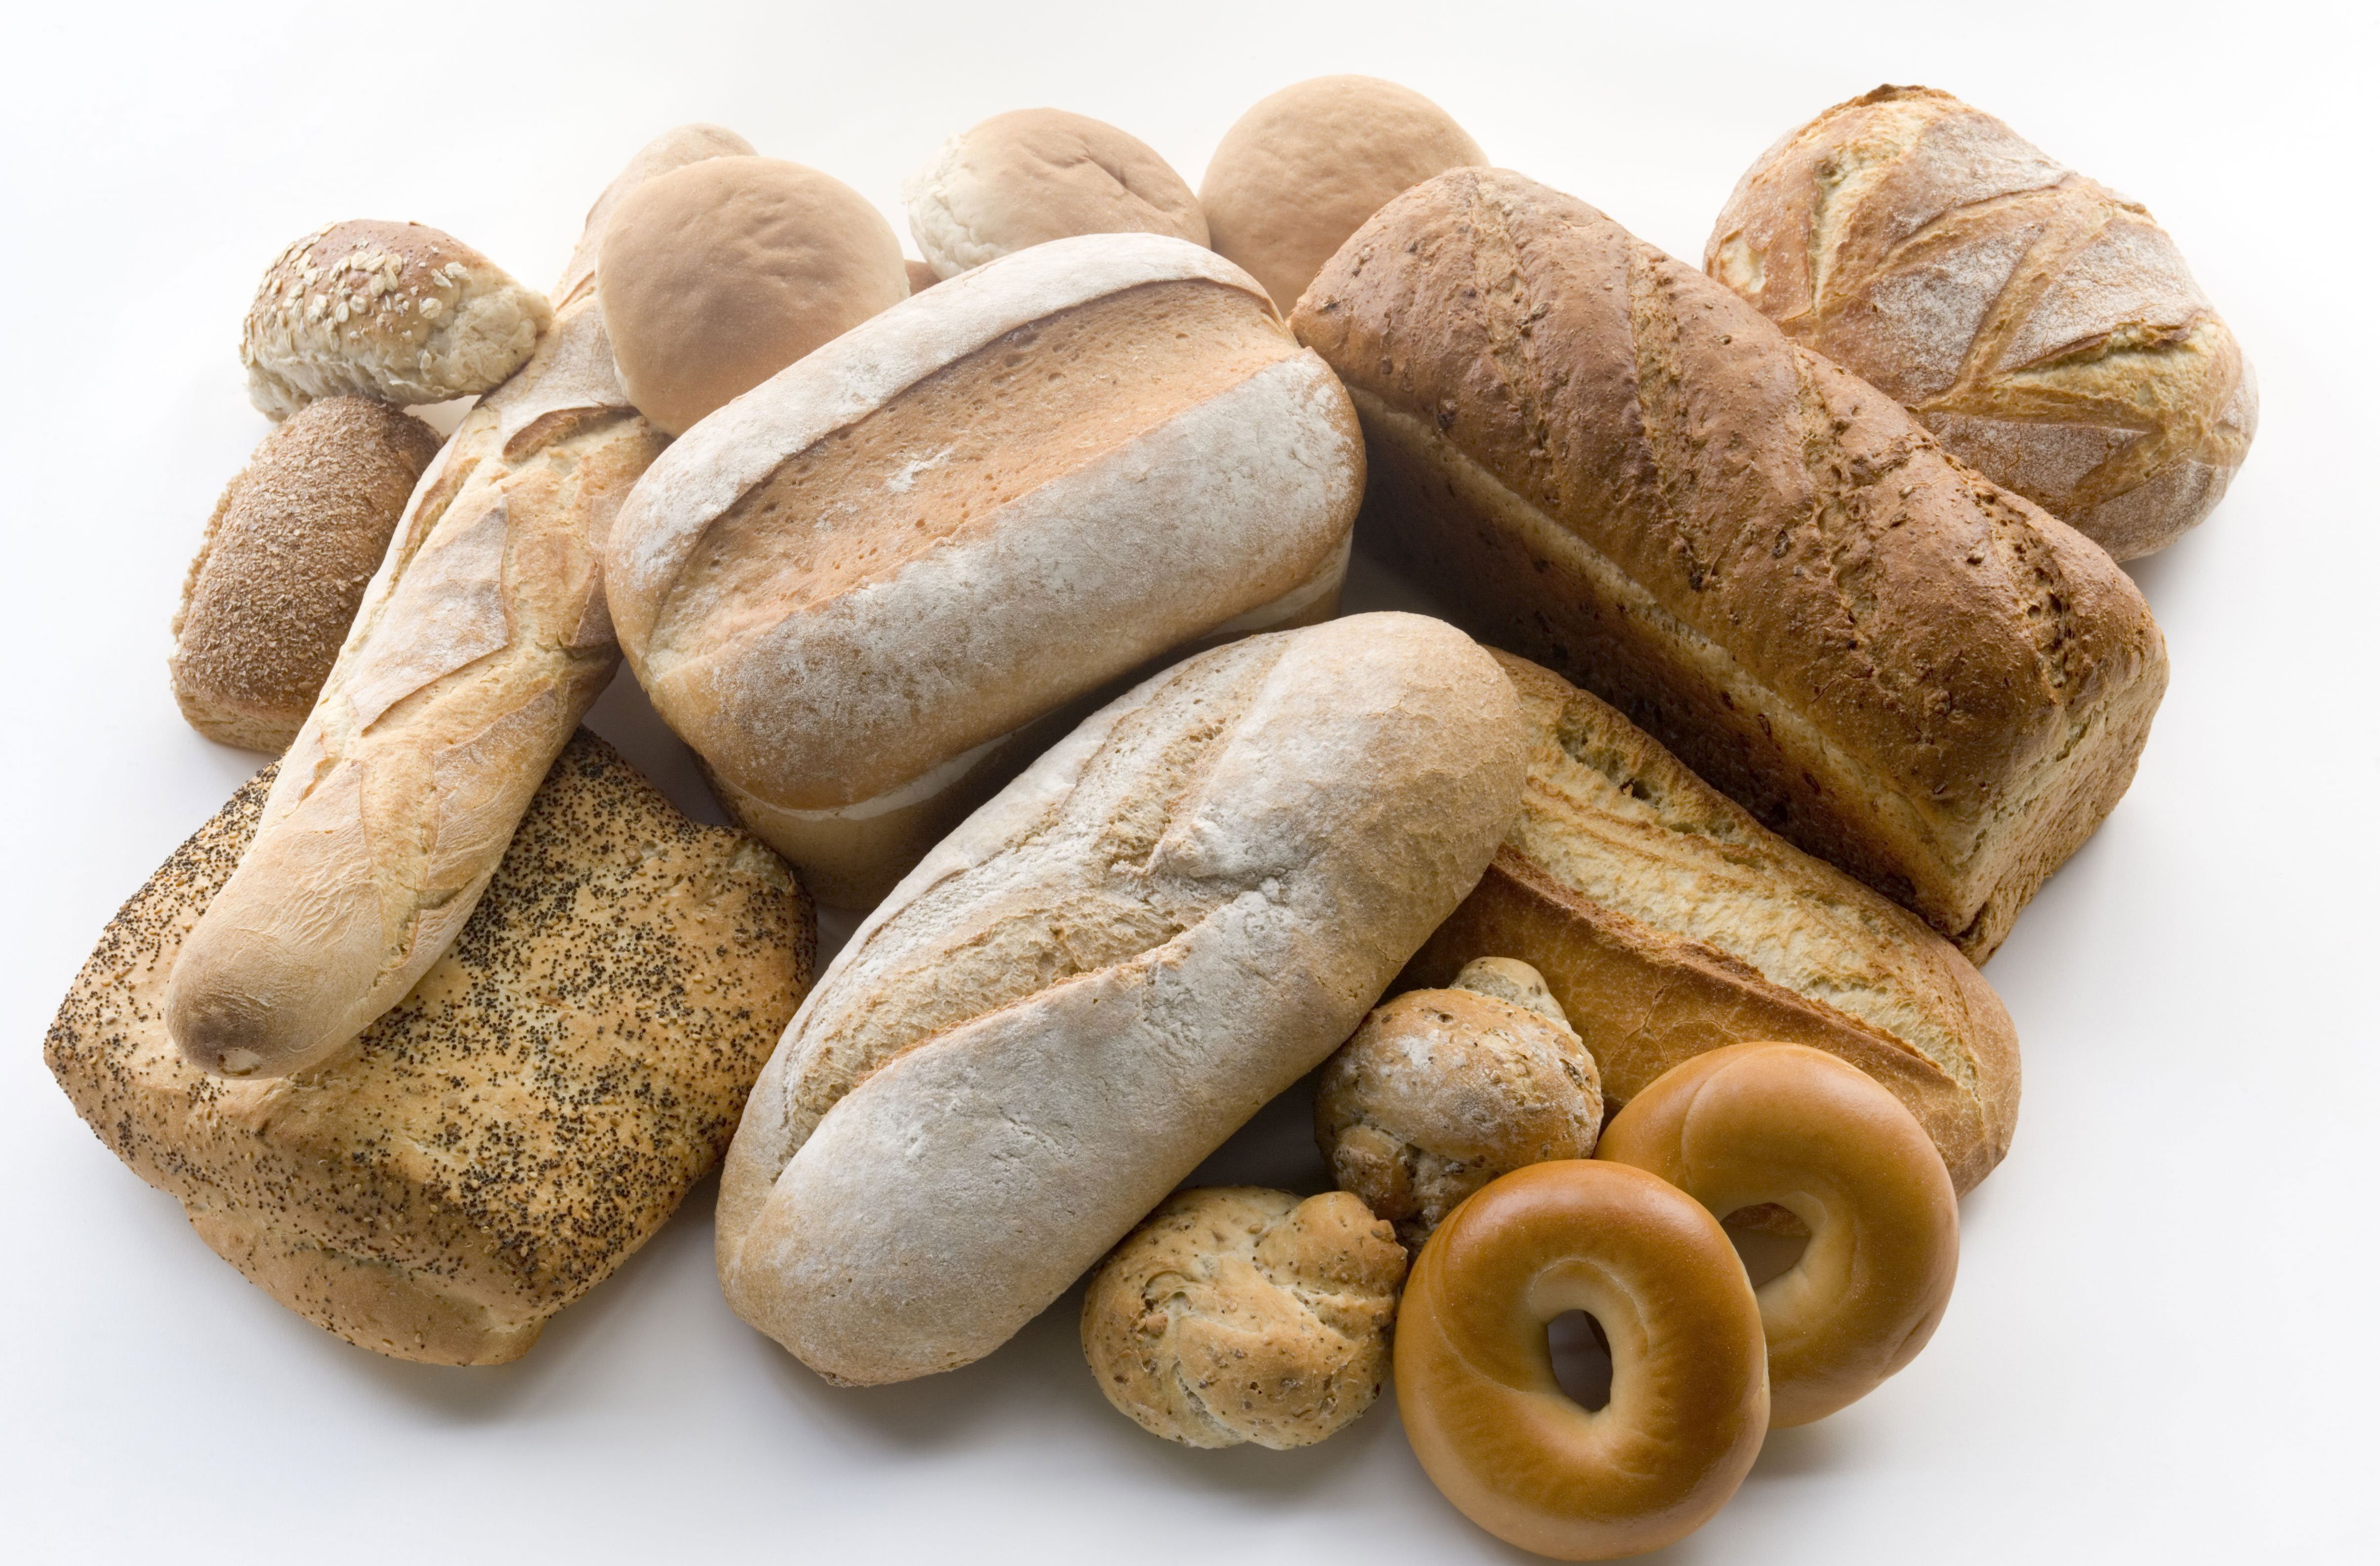 20 Best Worst Store-Bought Breads For Every Health Goal